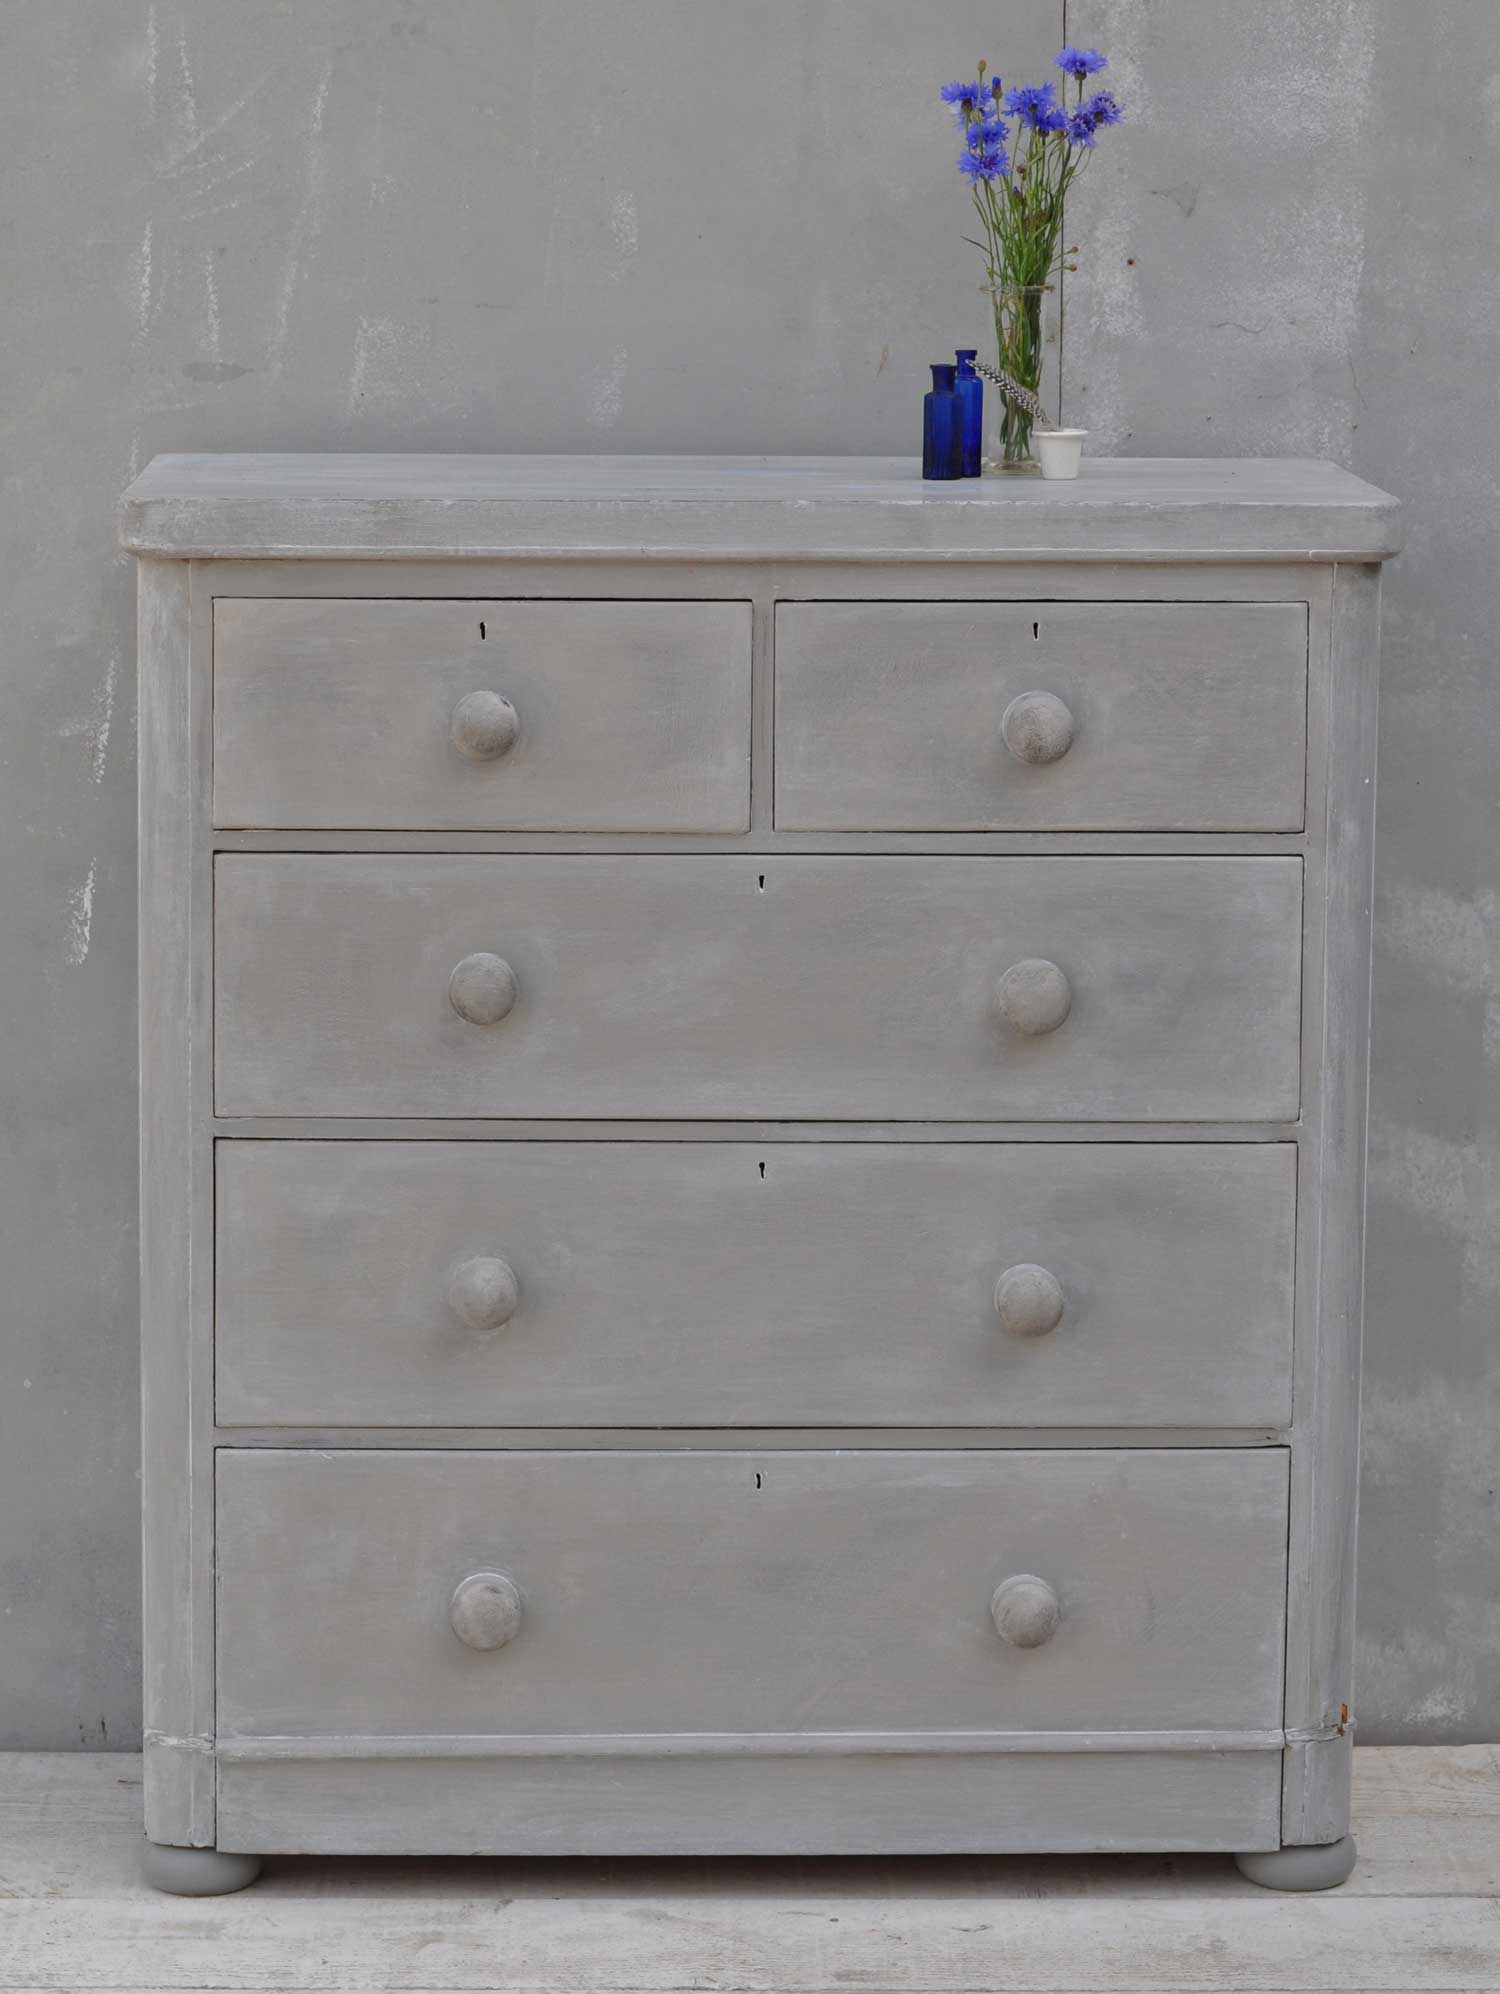 Victorian Antique Hand Painted Chest Of Drawers - Linen Press